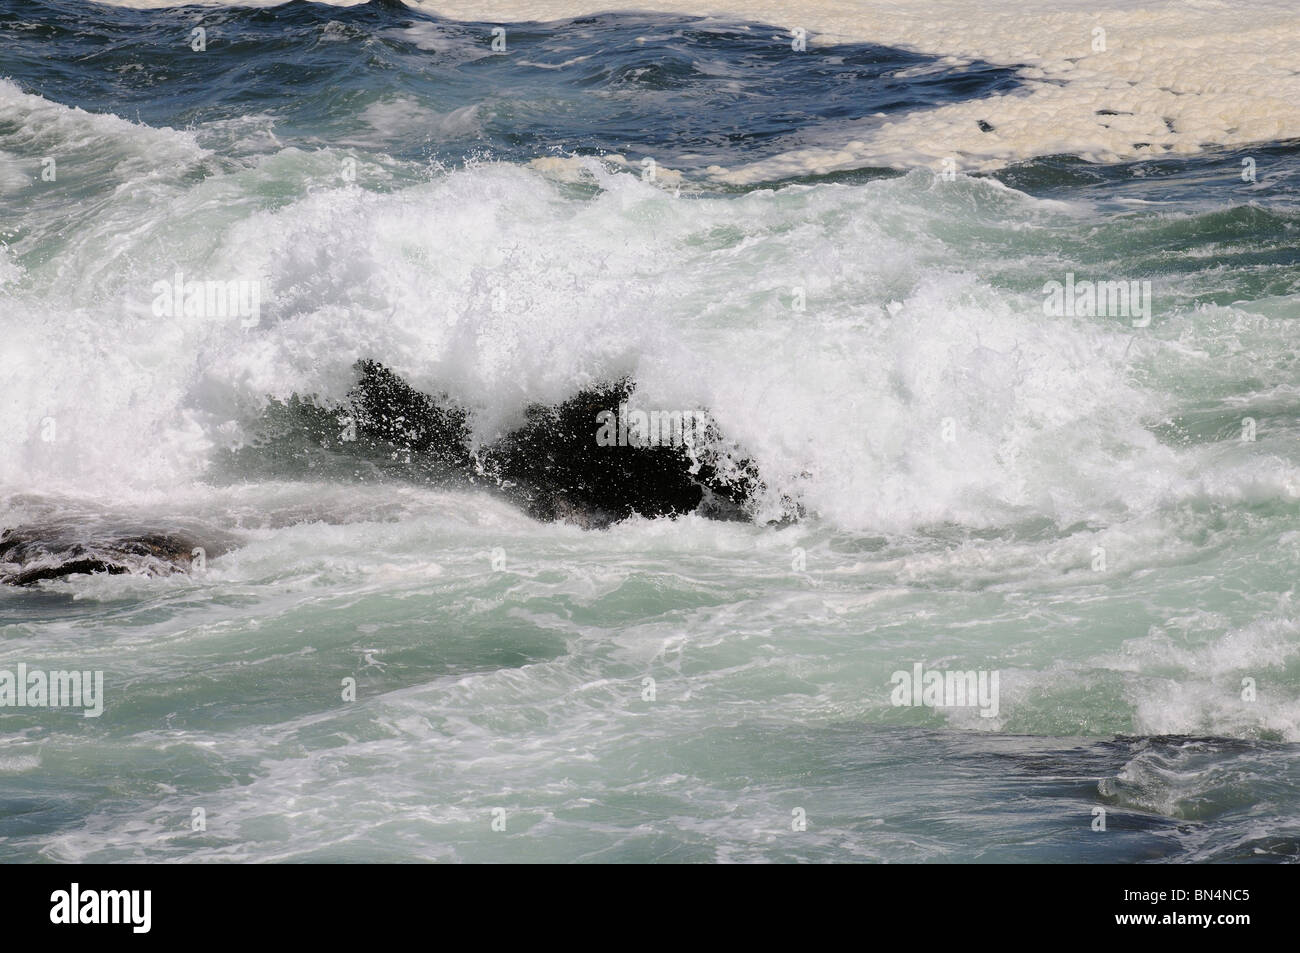 Atlantic Ocean with waves crashing over black rocks Hermanus western Cape South Africa - Stock Image